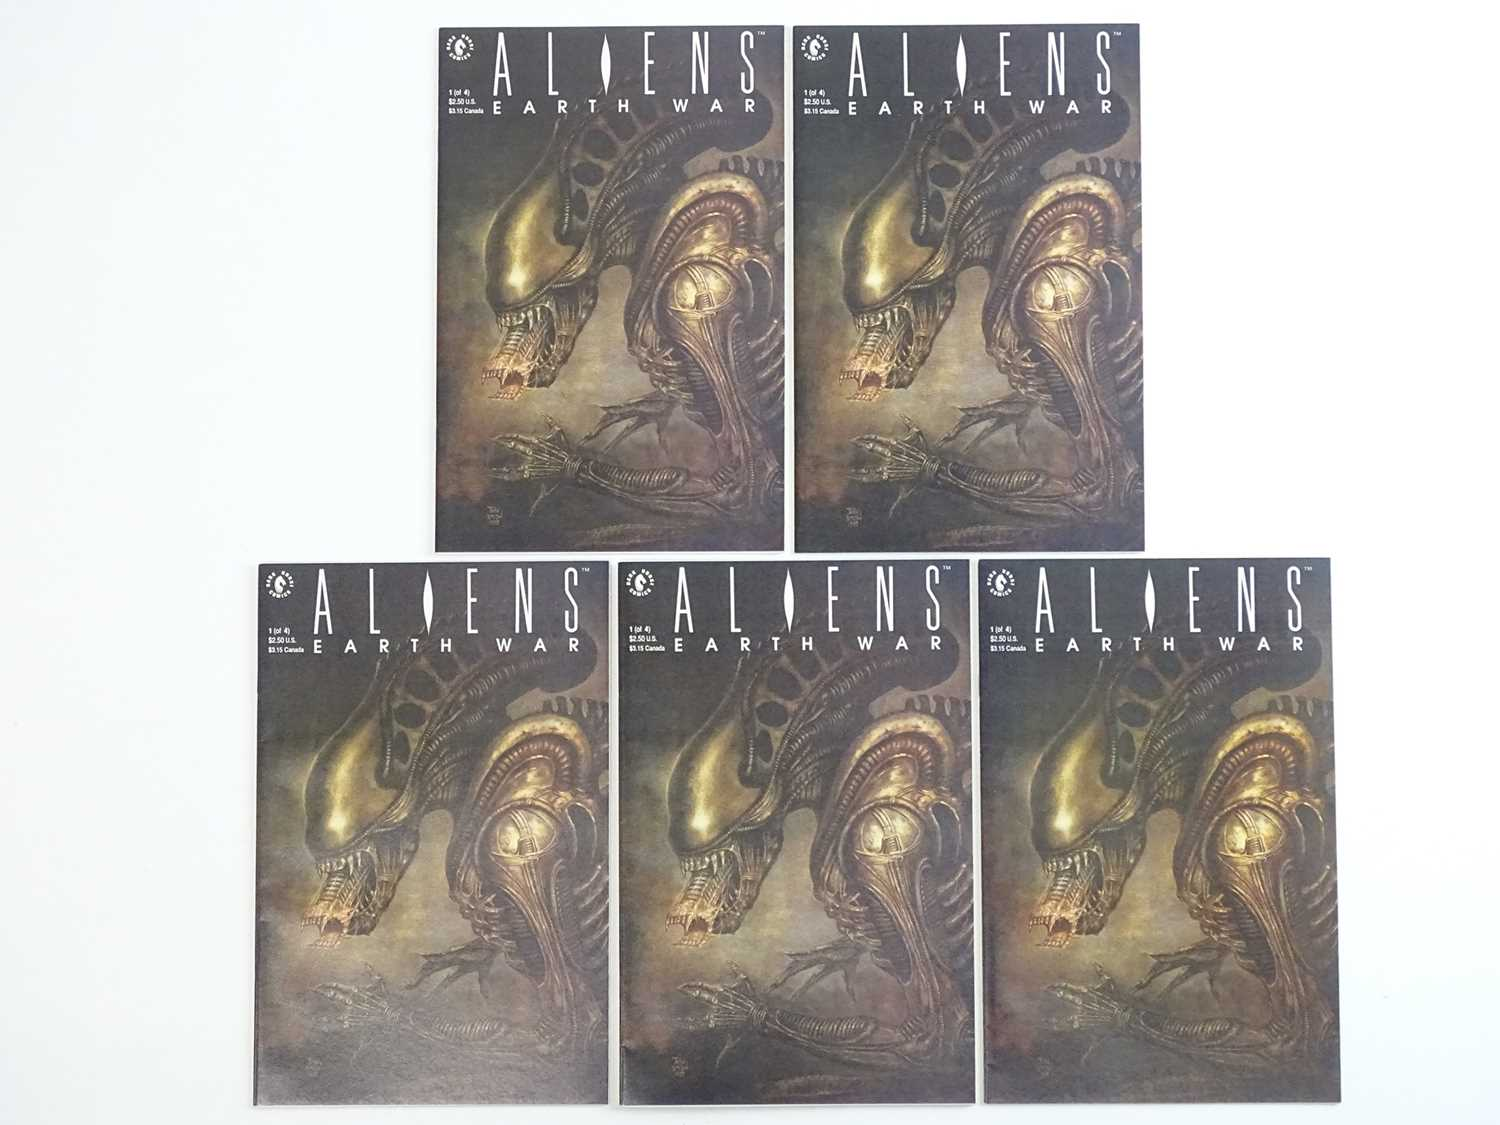 ALIENS: EARTH WAR #1 - (5 in Lot) - (1990 - DARK HORSE) - First Printing - Five (5) #1 issues for